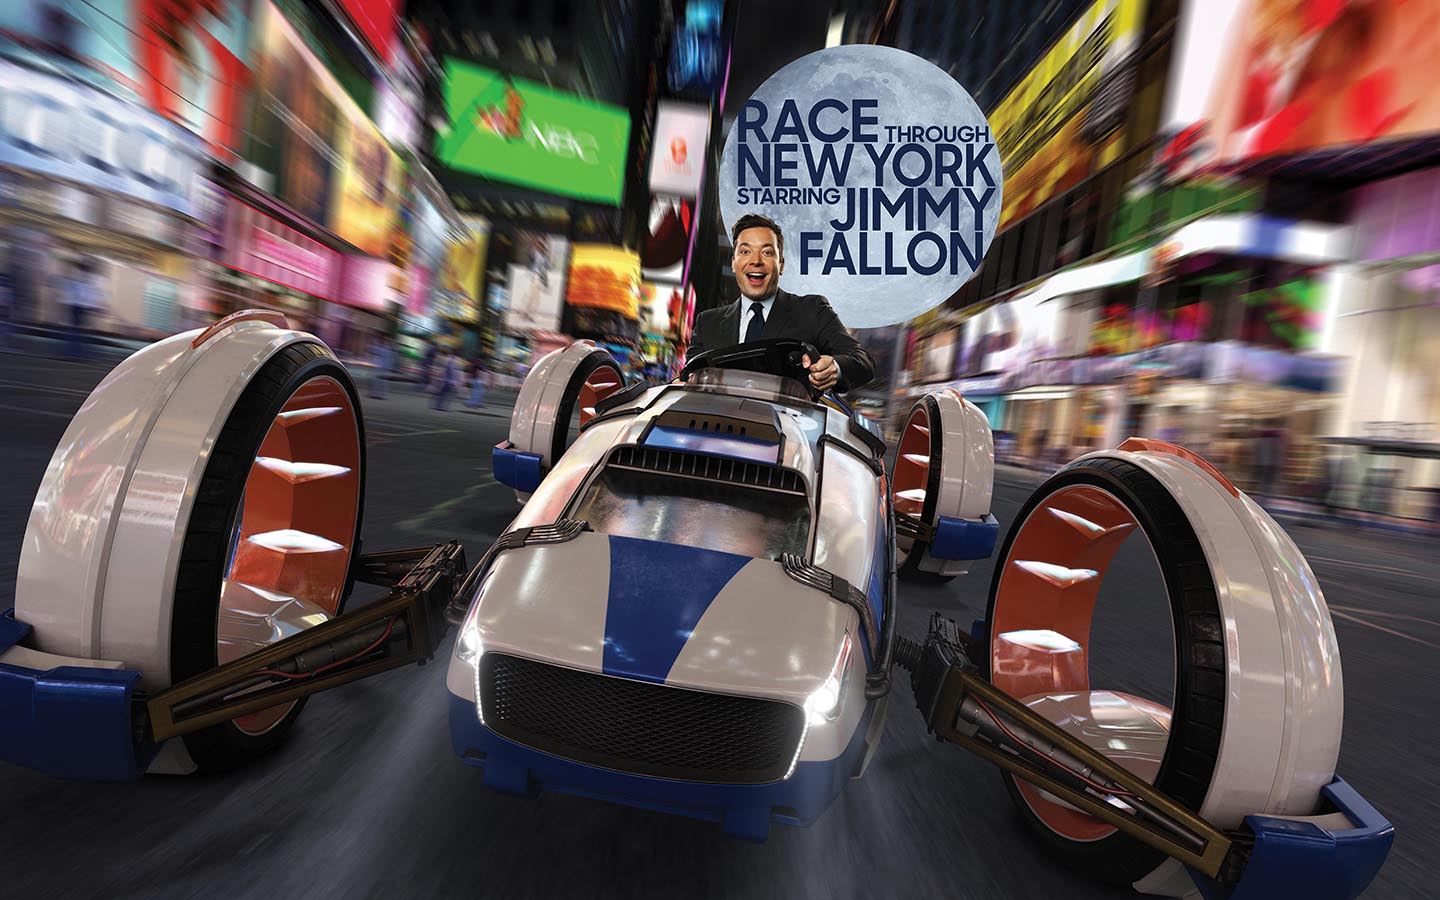 Race Through New York